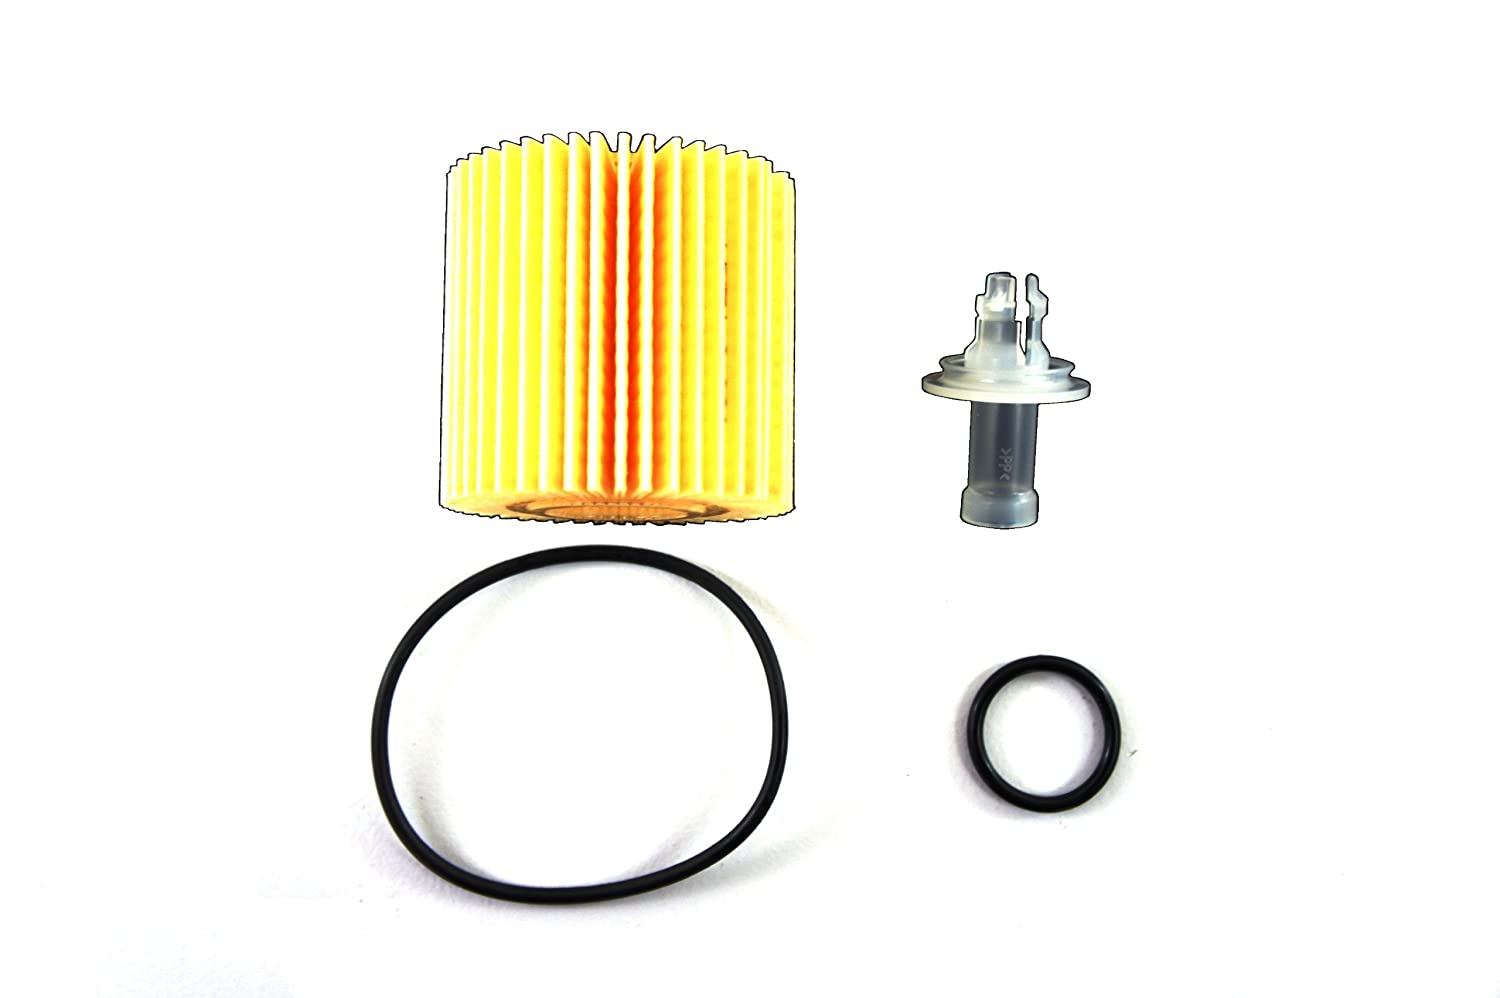 Gaskets Replacement Parts Automotive Head Gasket Sets Infiniti G35 Fuel Filter Location Toyota Genuine 04152 Yzza1 Oil